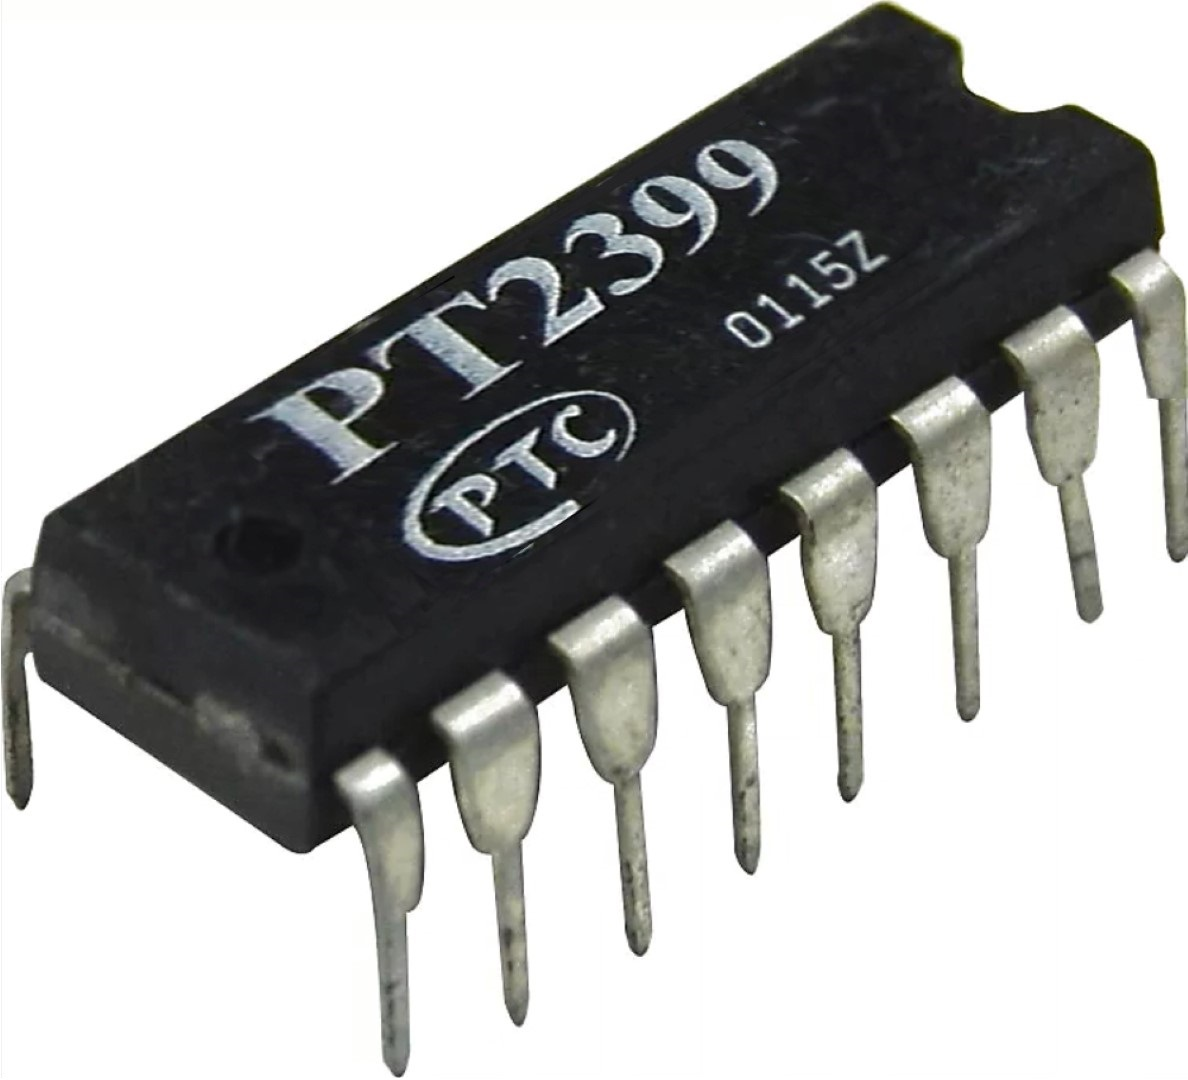 Electrosmash Electronics For Audio Circuits Where To Buy Integrated Circuit Many Well Known Effects Like Belton Accu Tronics Reverb Module Danelectro Fab Echo And The Rebote Delay Use This Chip As Core Of